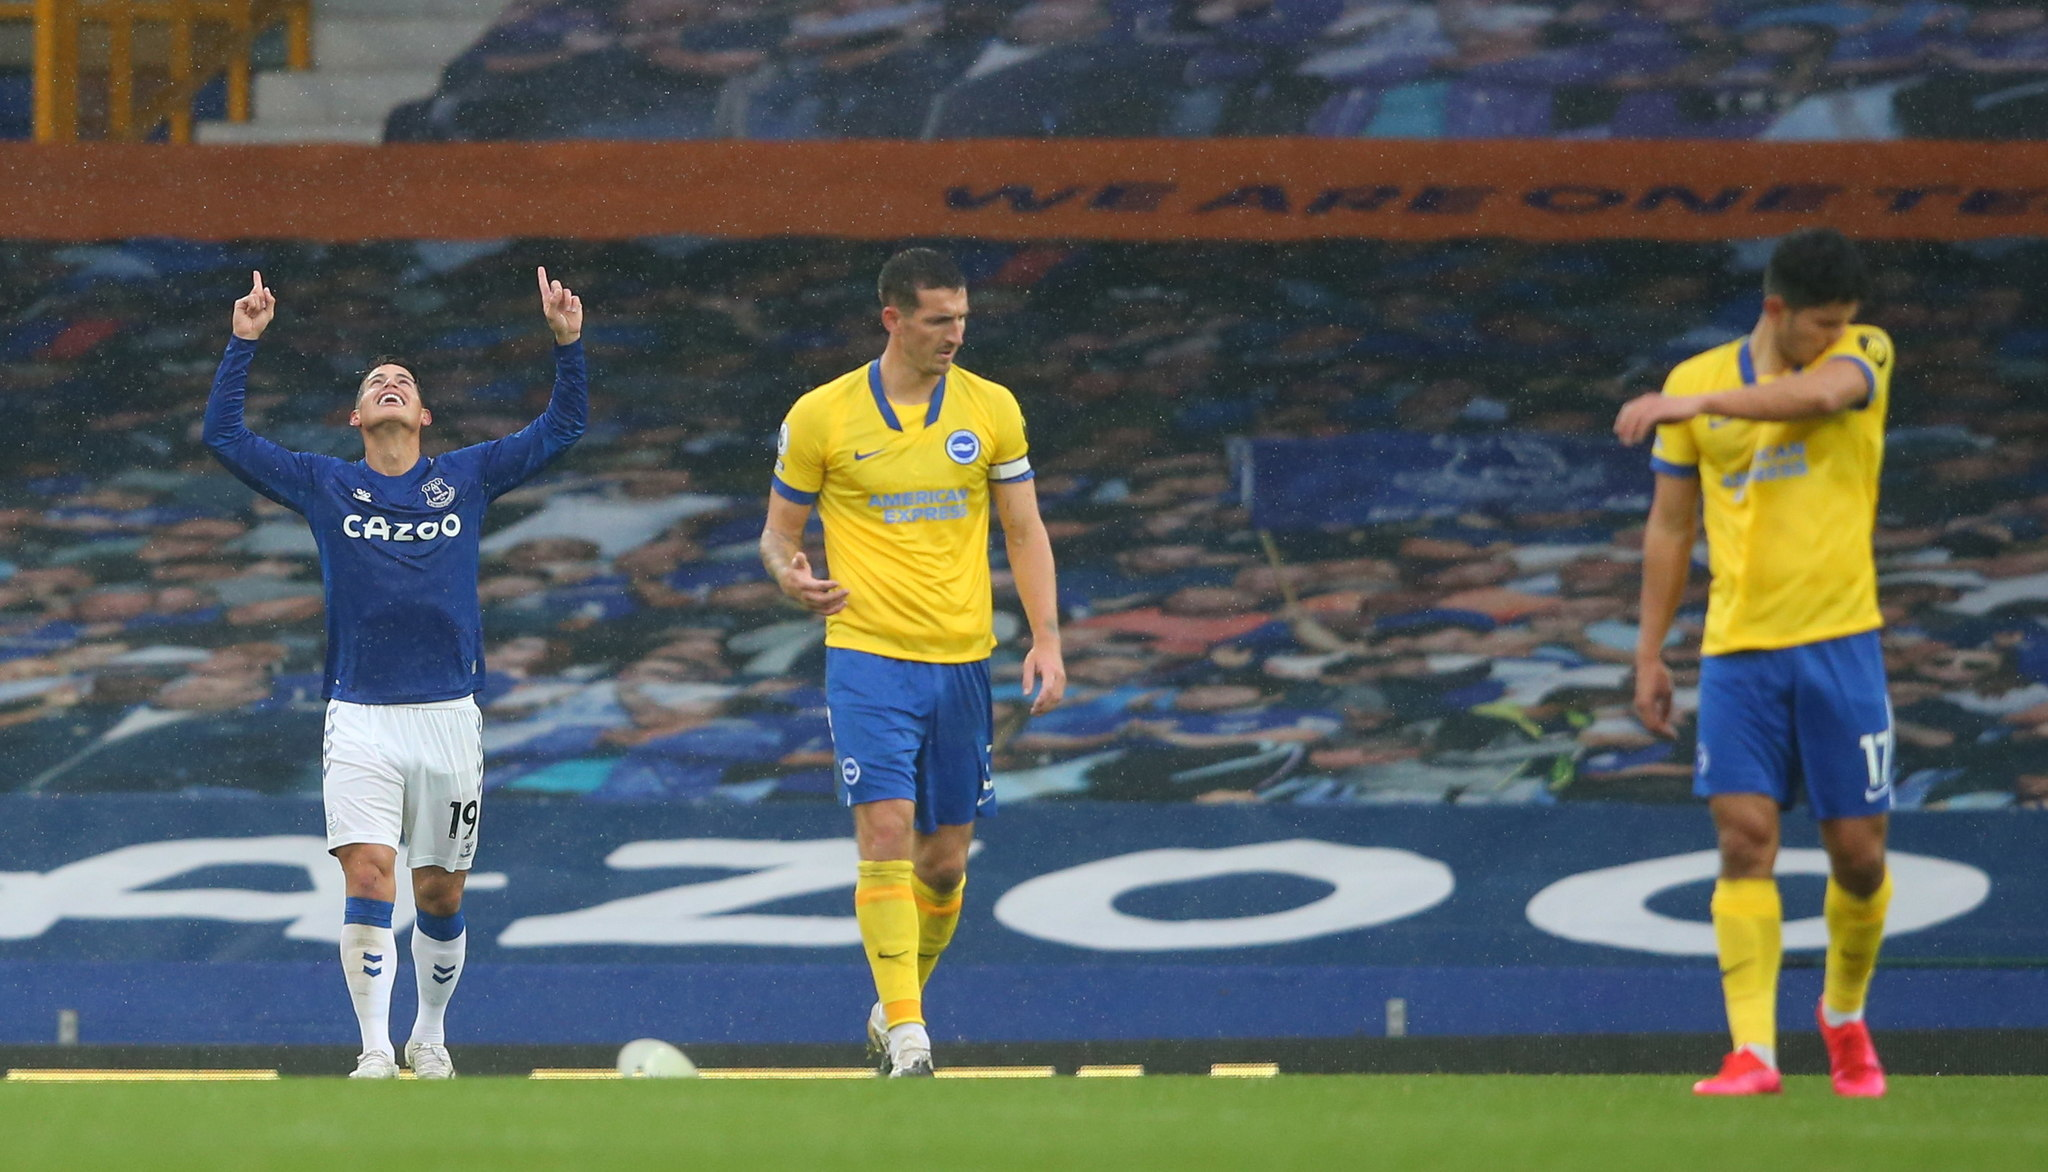 Everton's perfect start of the season continues as James Rodriguez shines